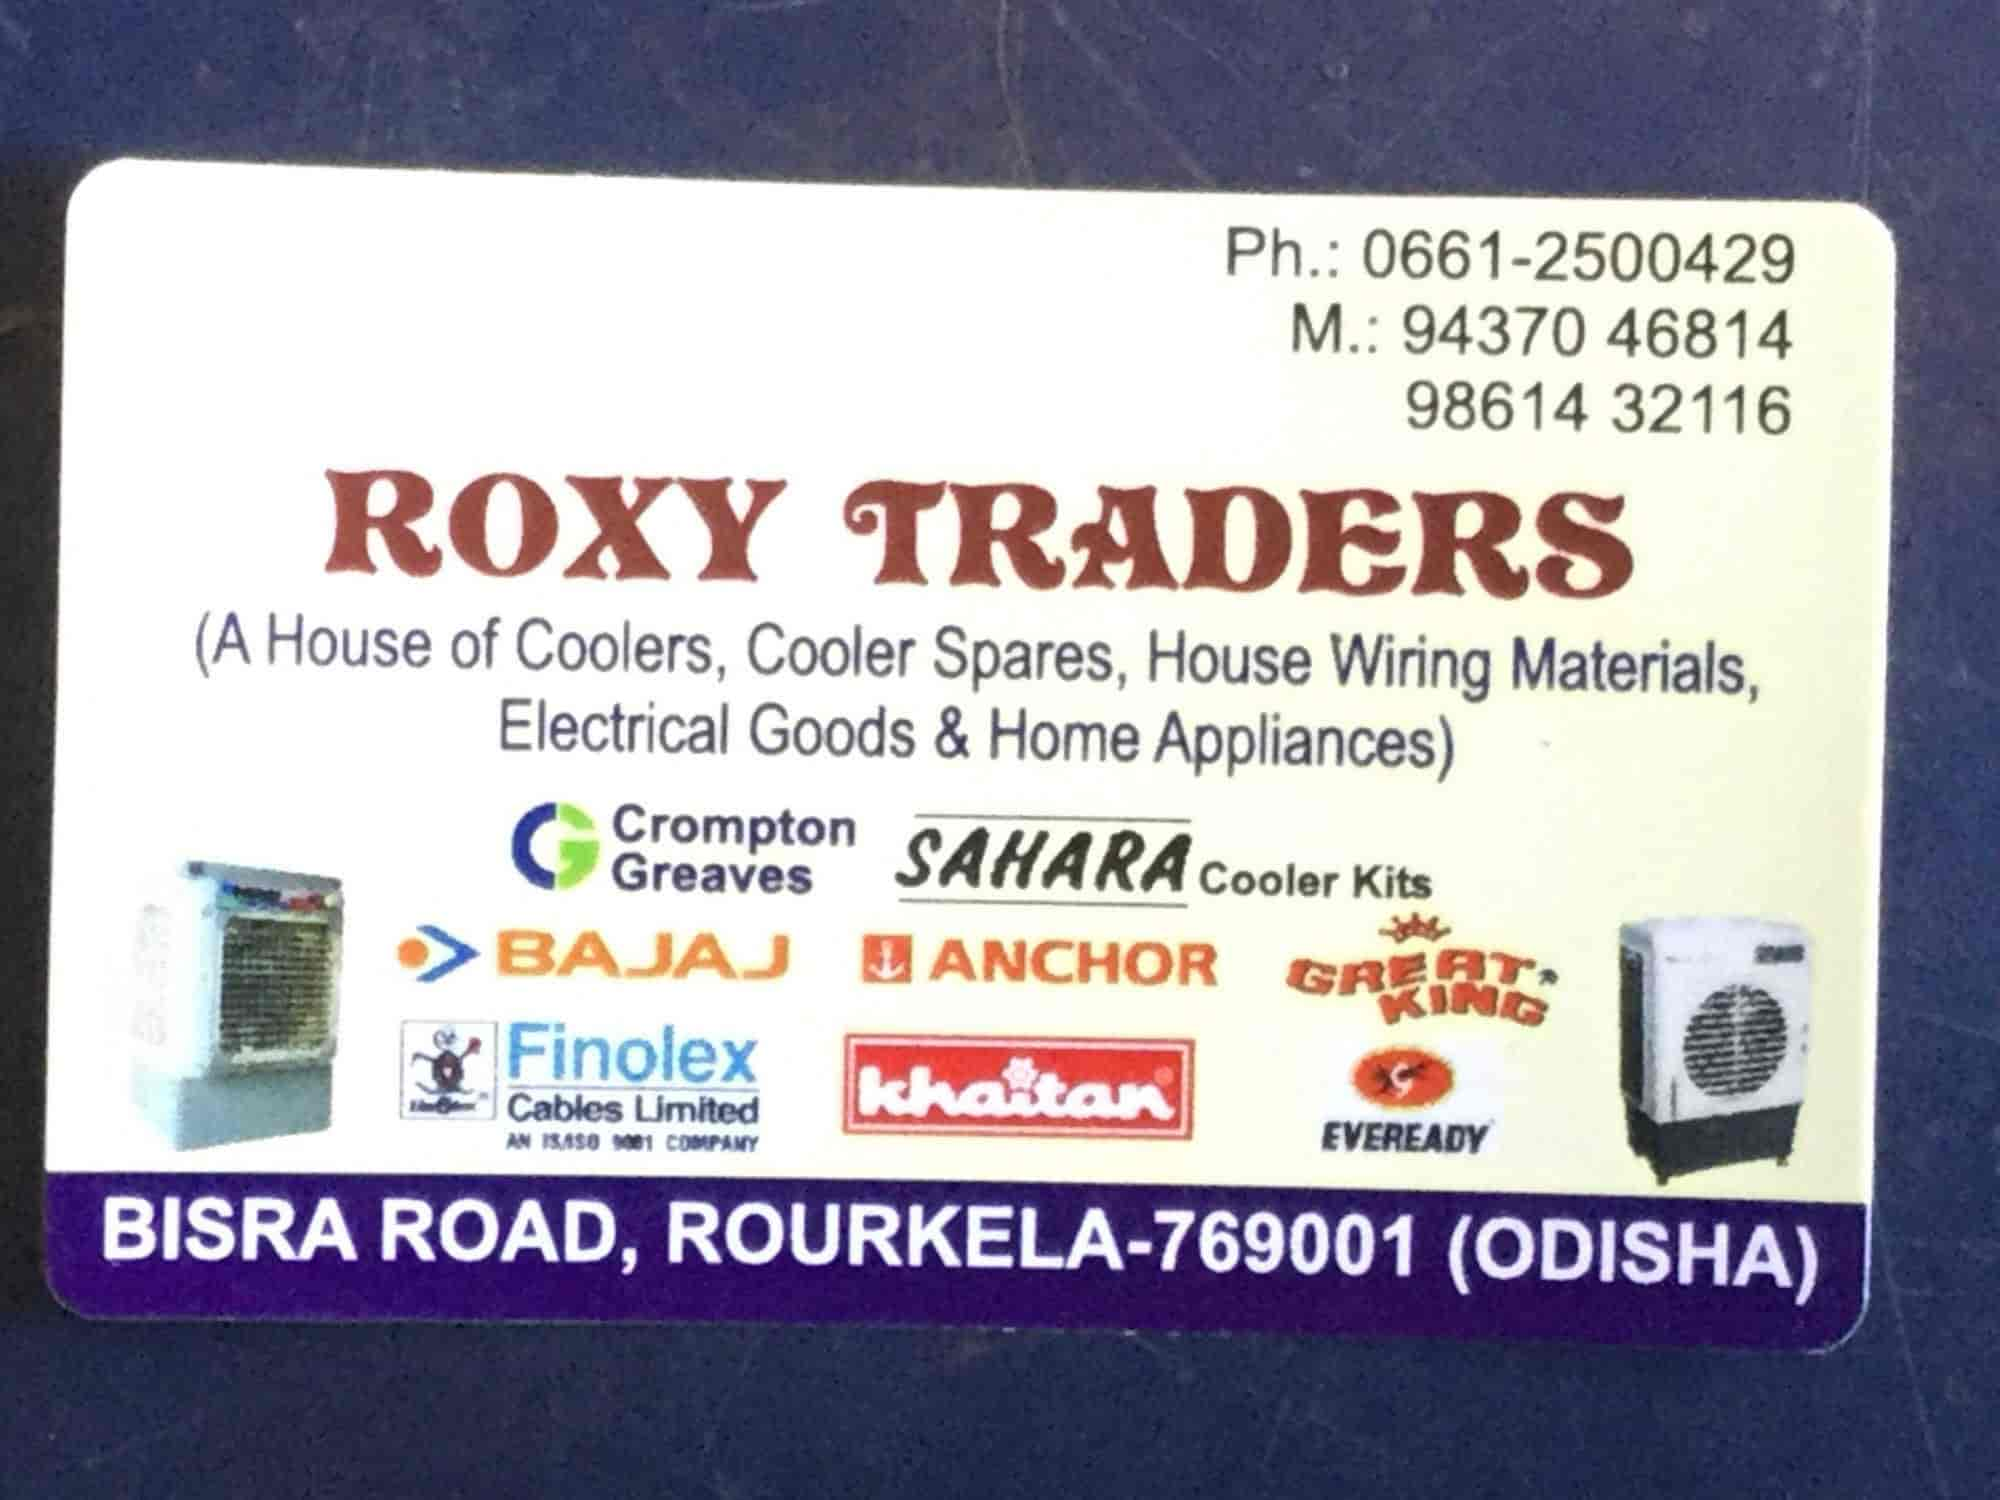 roxy wiring kit wiring diagrams epiphone sg special diagram roxy traders, bisra road electrical shops in rourkela justdial fender wiring diagrams simple automotive wiring